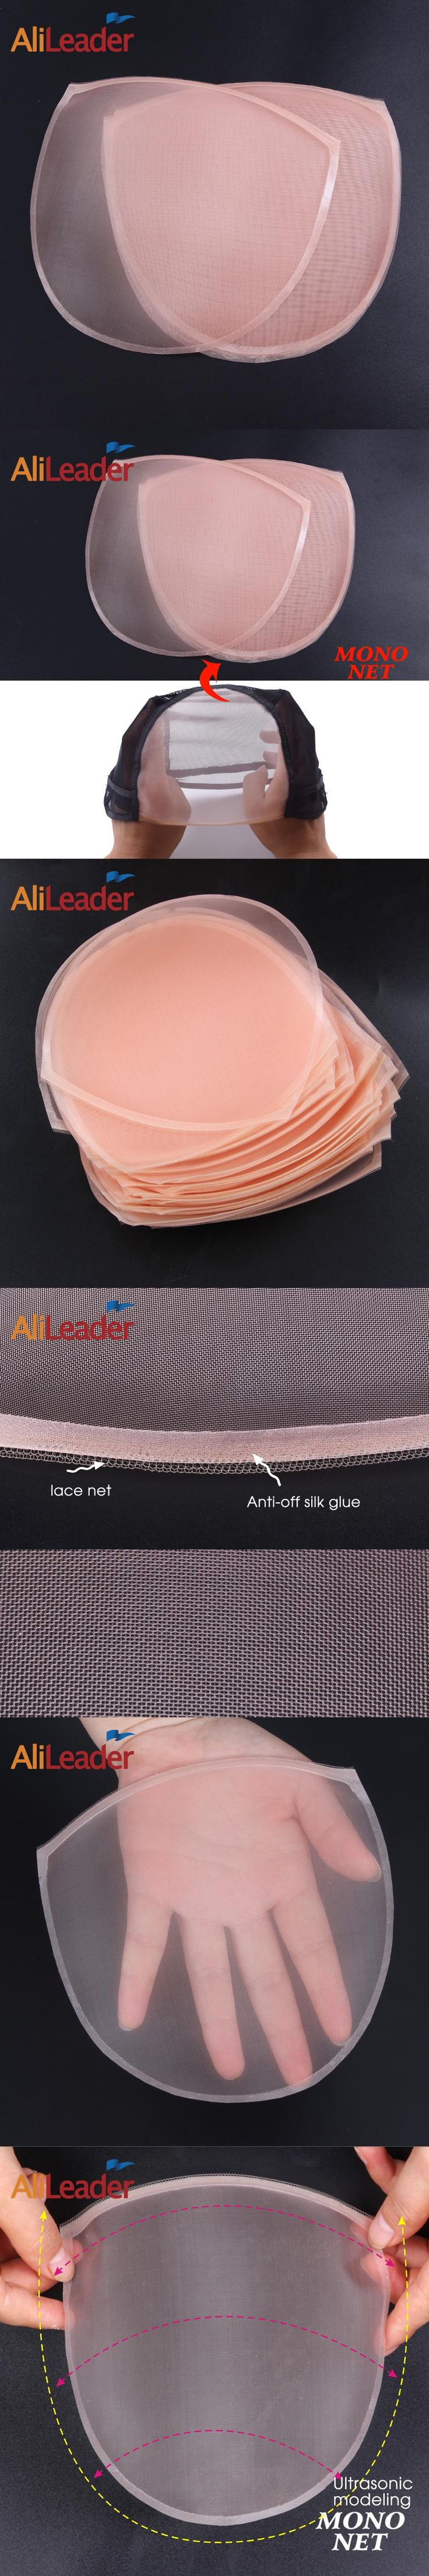 Top Quality Making Wig Caps Thin Skin Mono Net Lace Bases For Hair Toupee/Hair Extension/Wigs, Realistic U Part Wig Cap Tools